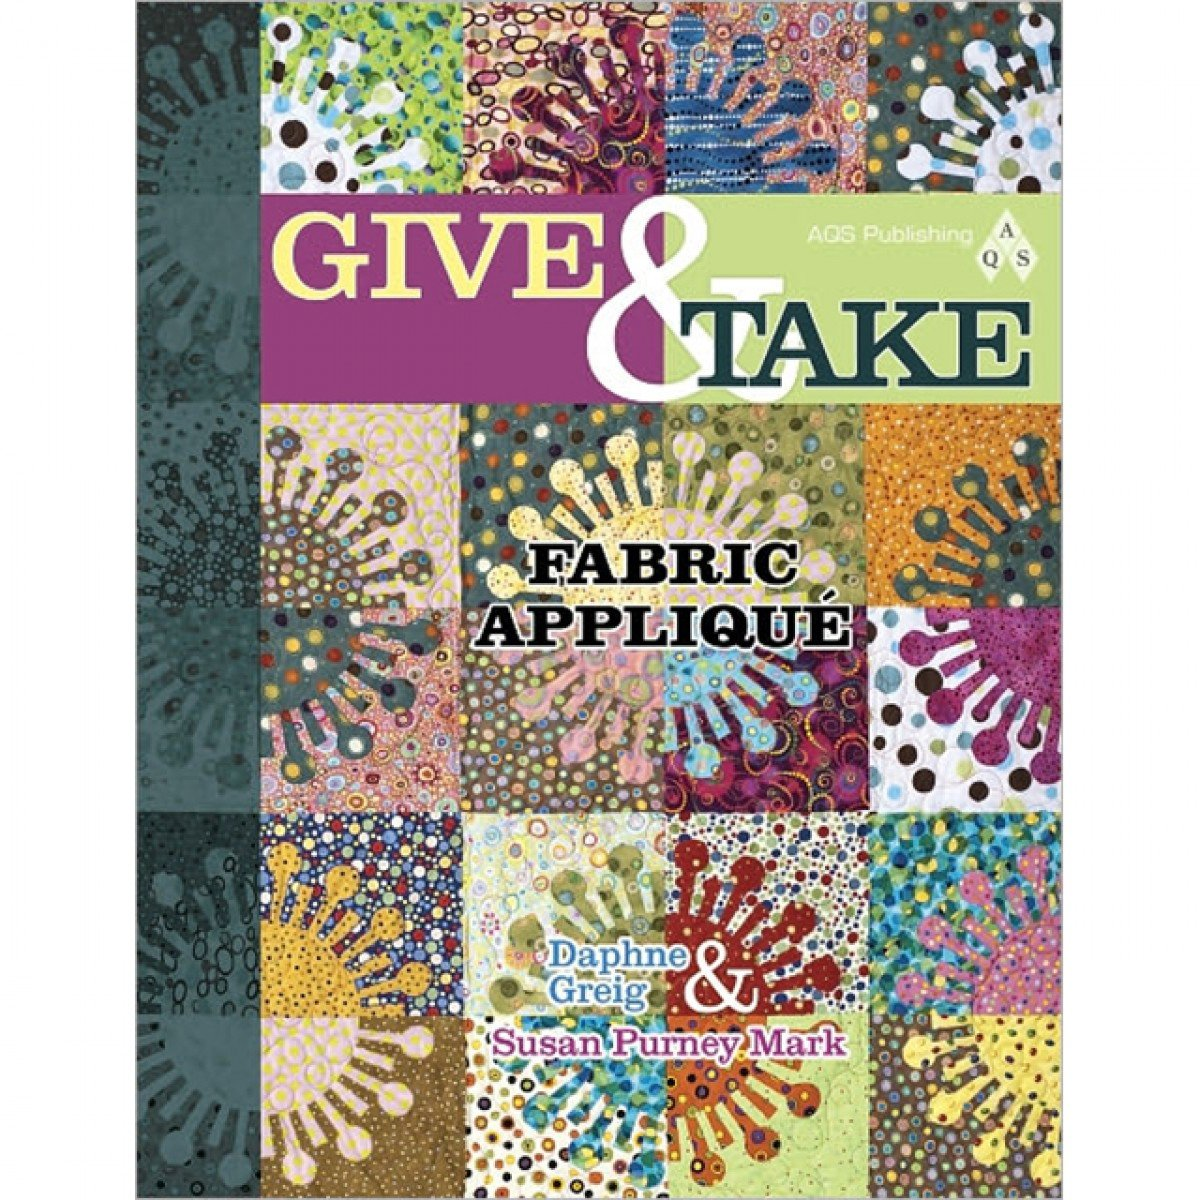 Give & Take Fabric Applique by Daphne Greig & Susan Purney Mark